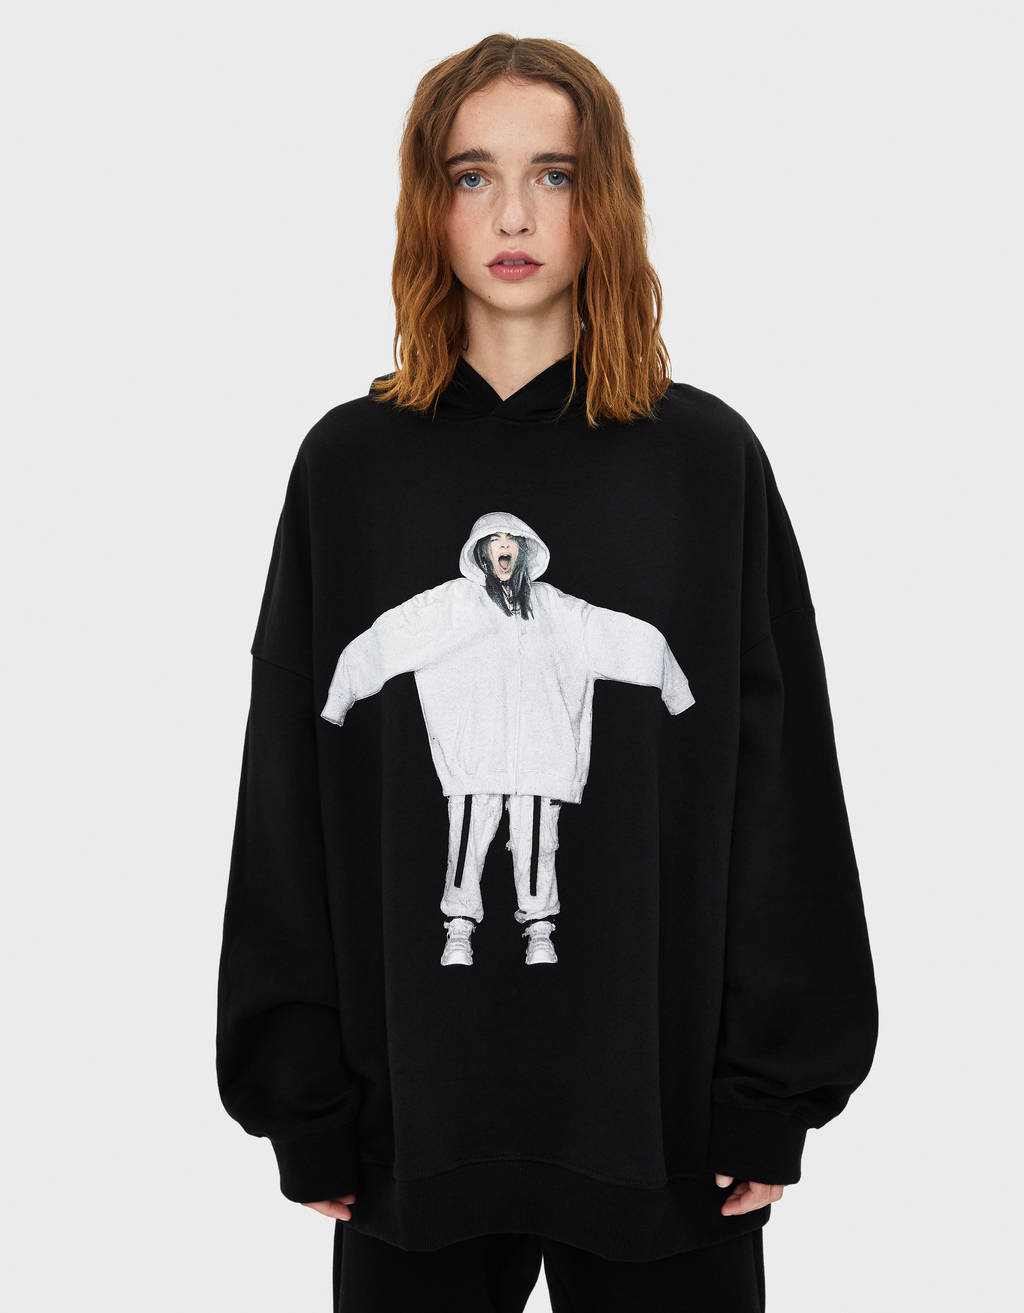 Billie Eilish x Bershka sweatshirt